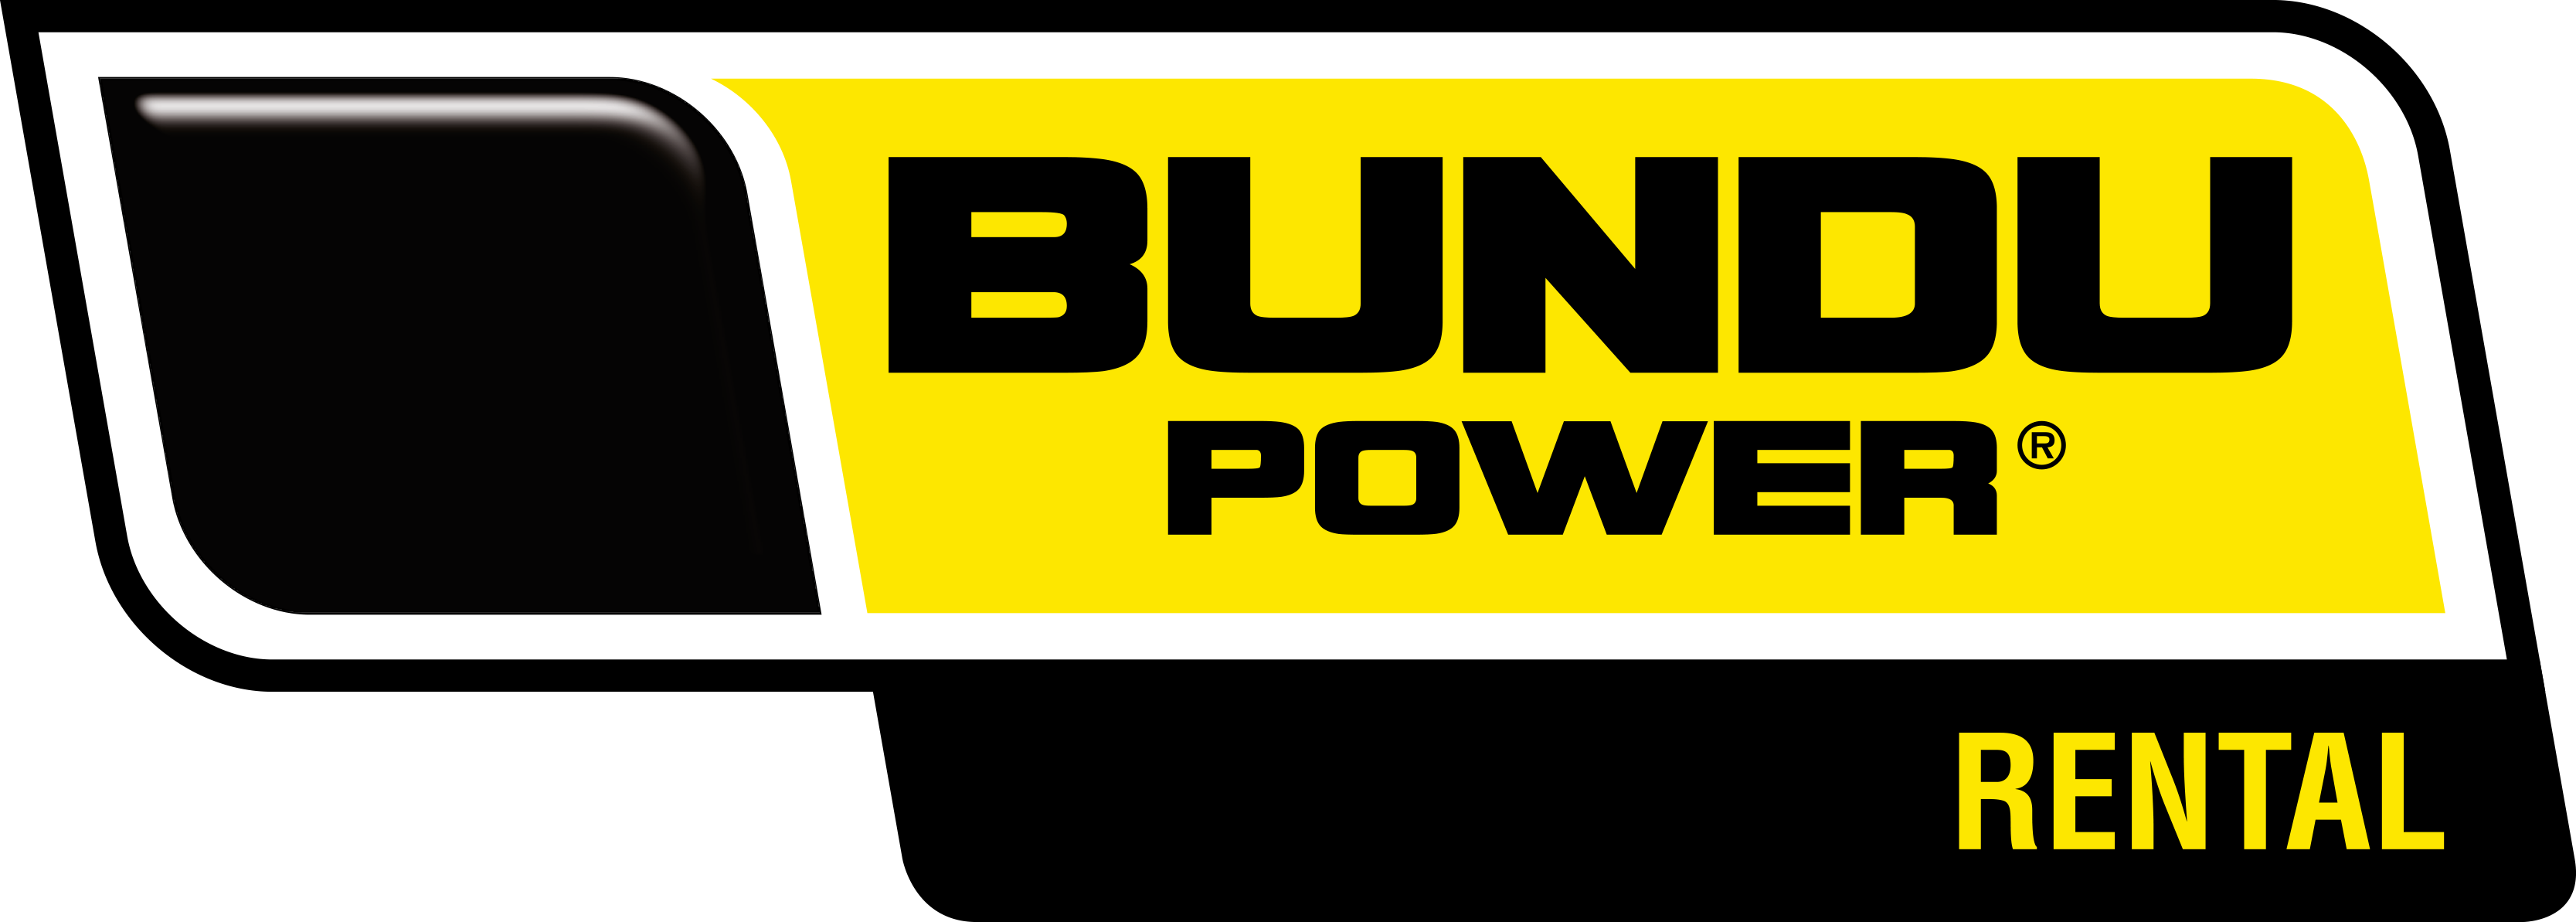 Bundu Power Rental